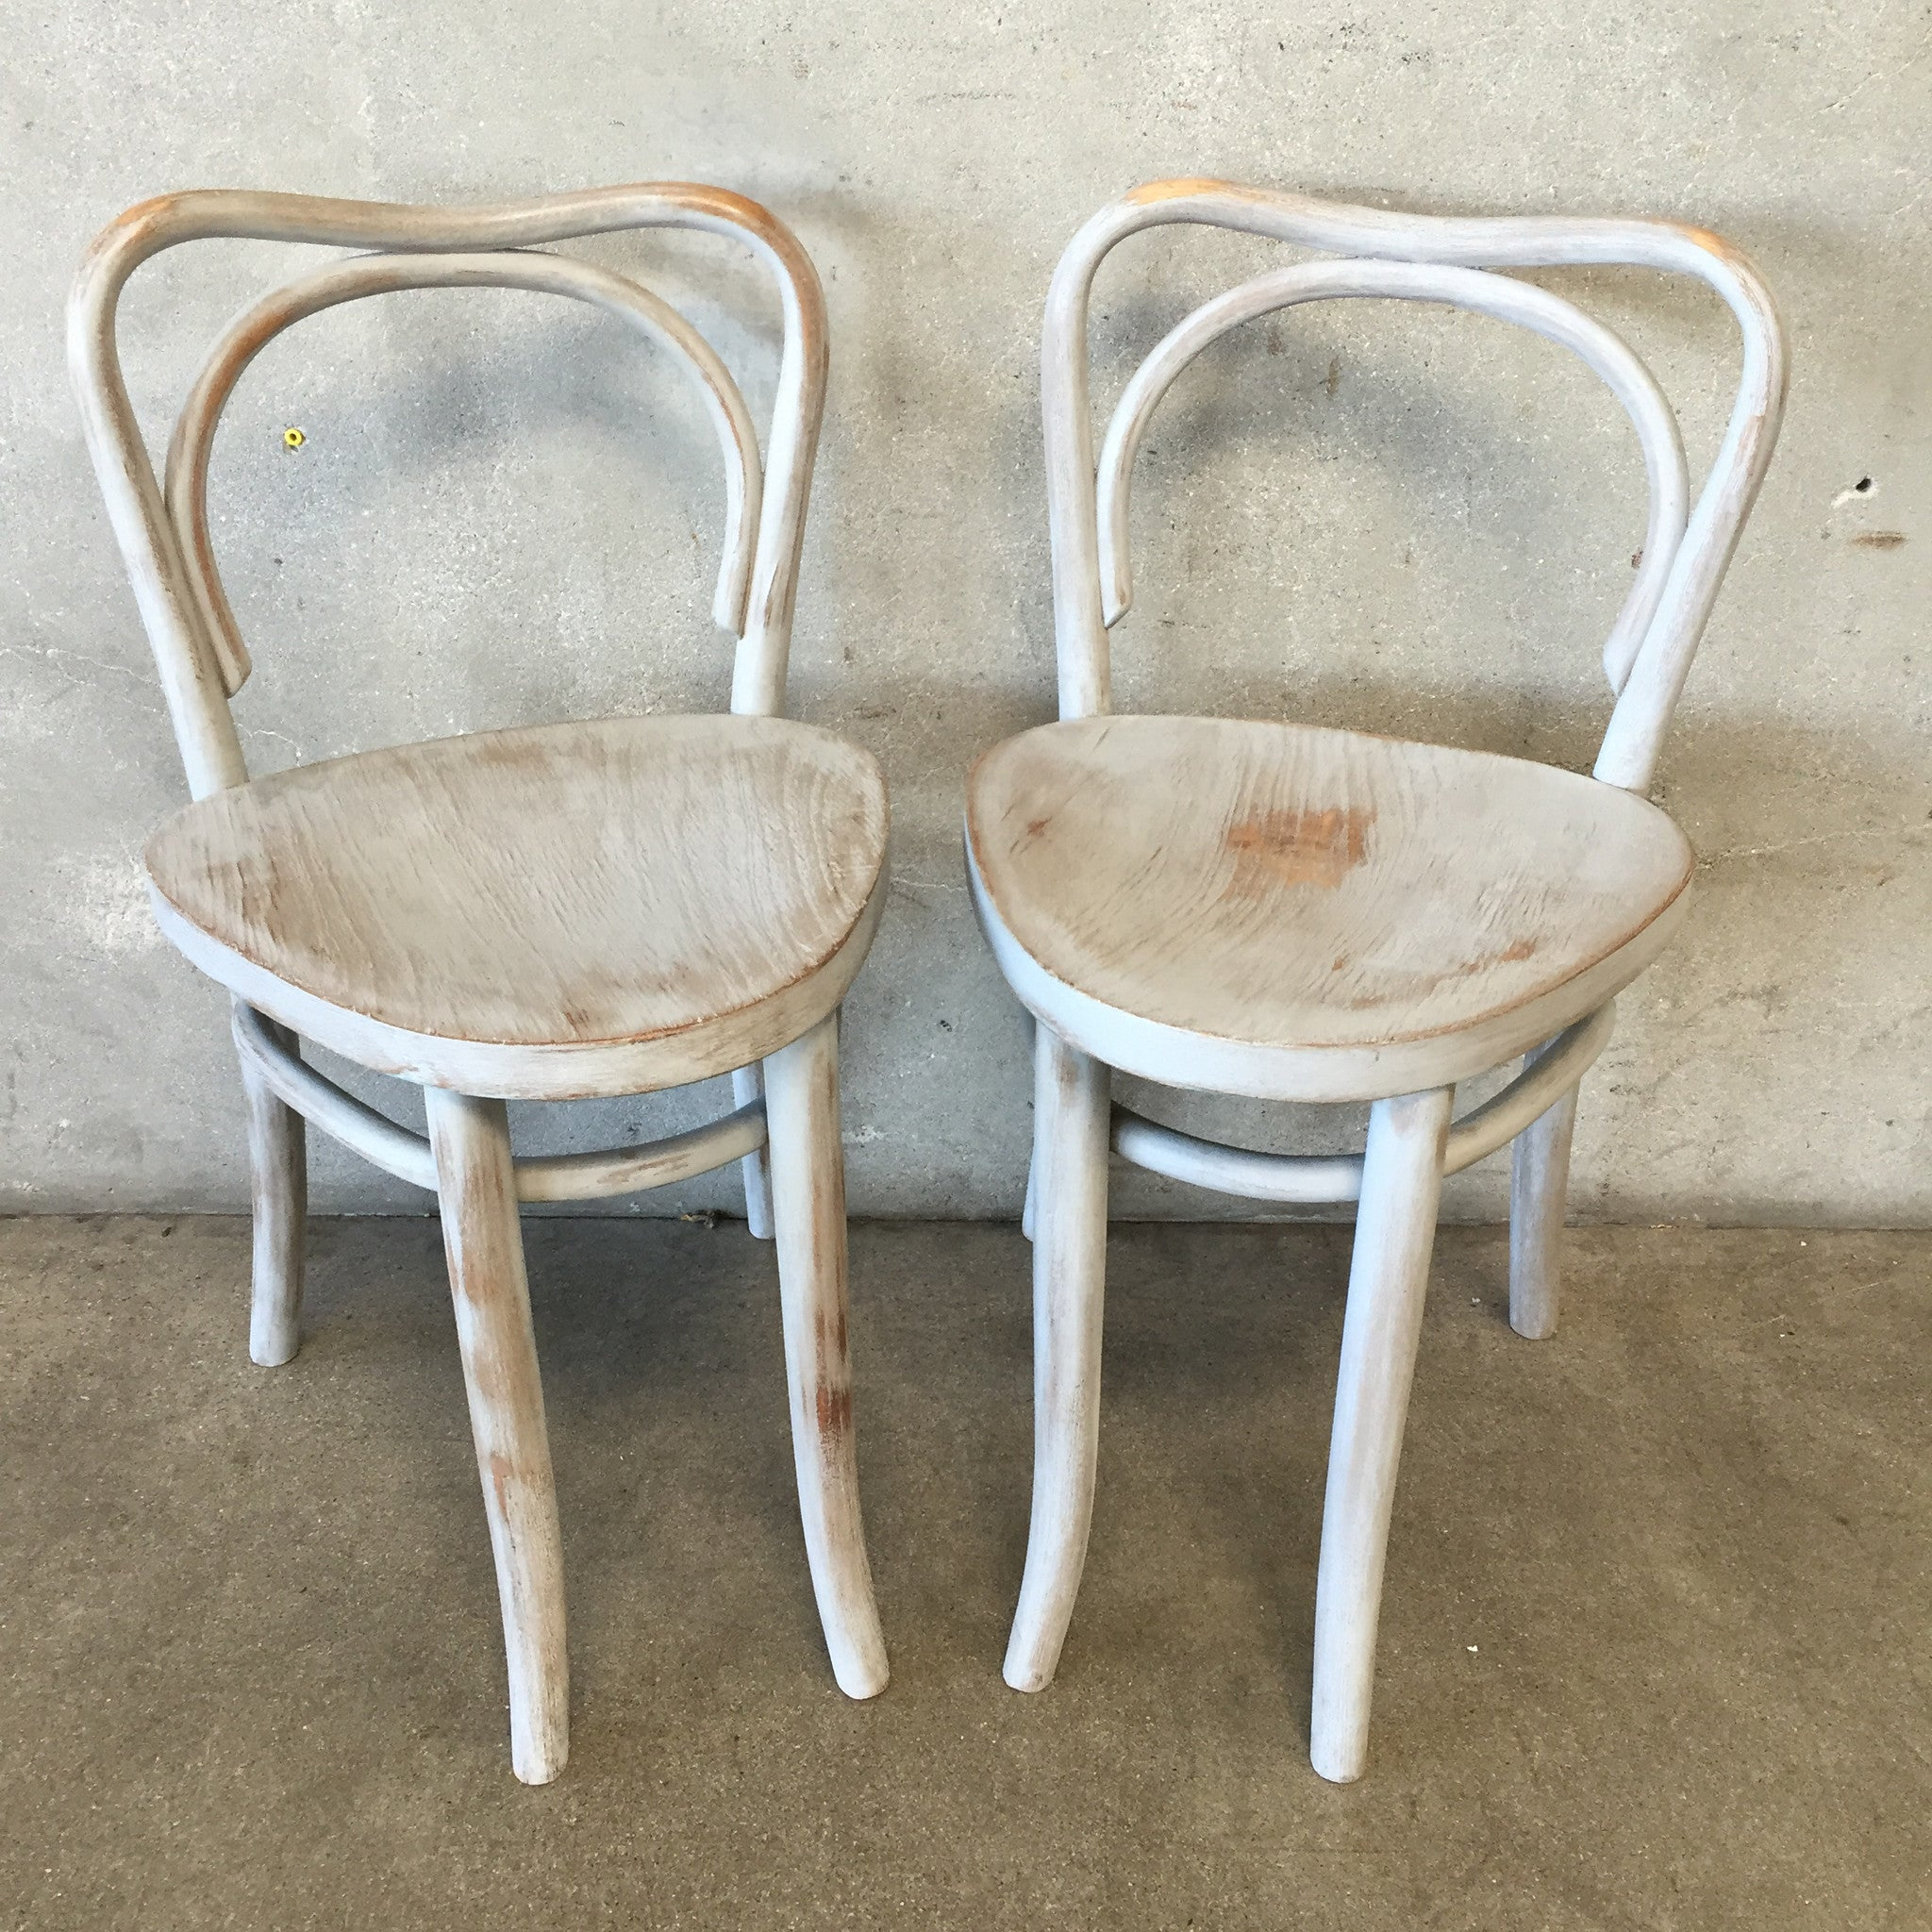 Pair Of White Ice Cream Parlor Chairs ...